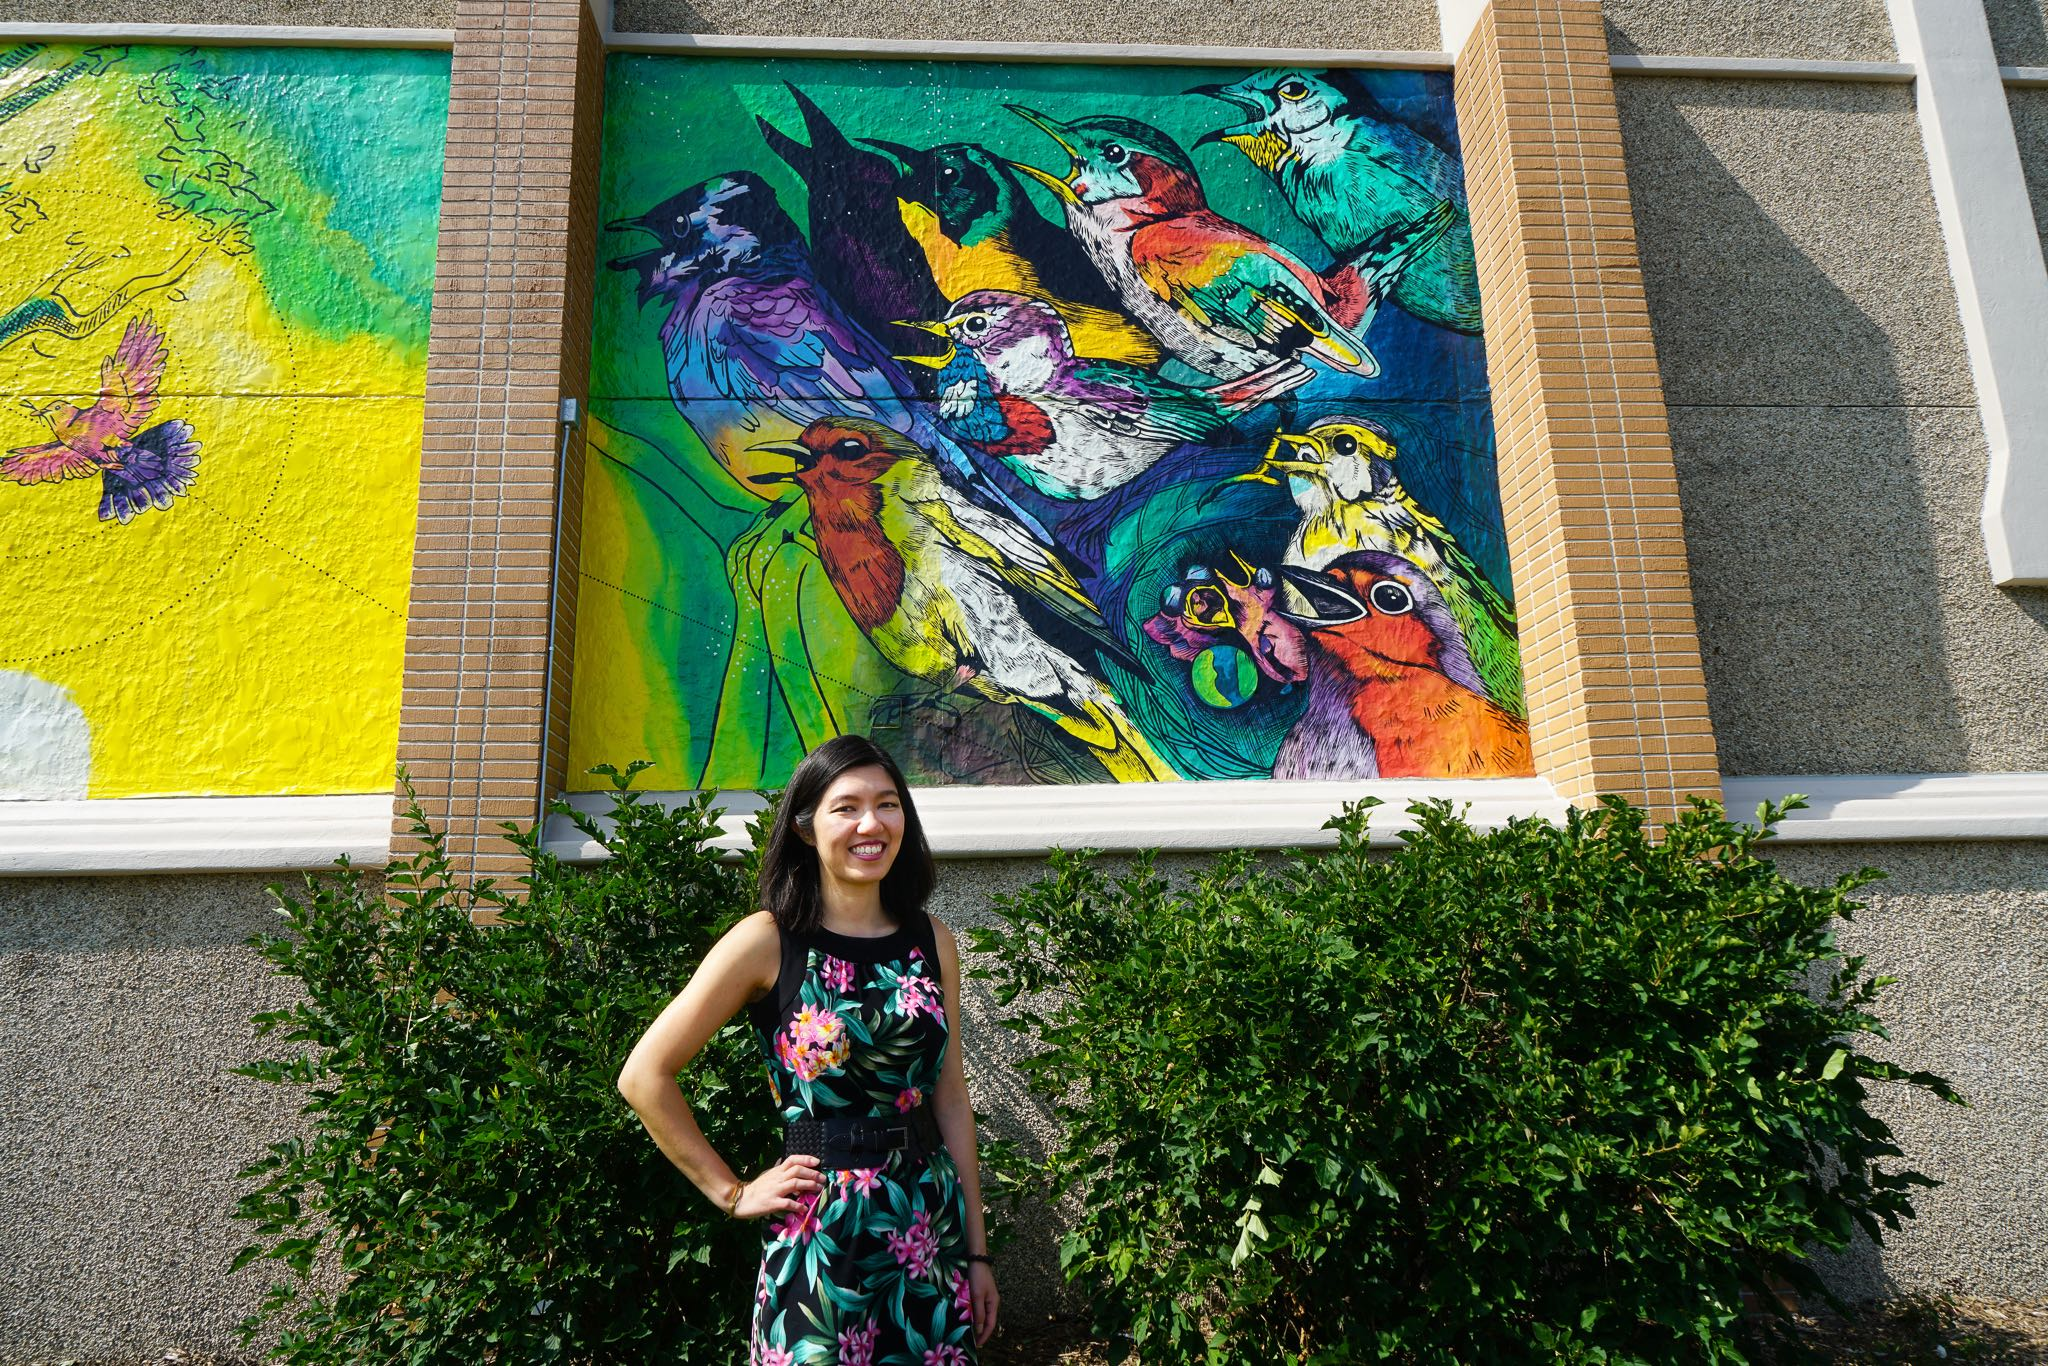 Giant Mural at Lutheran Church with Jenie Gao